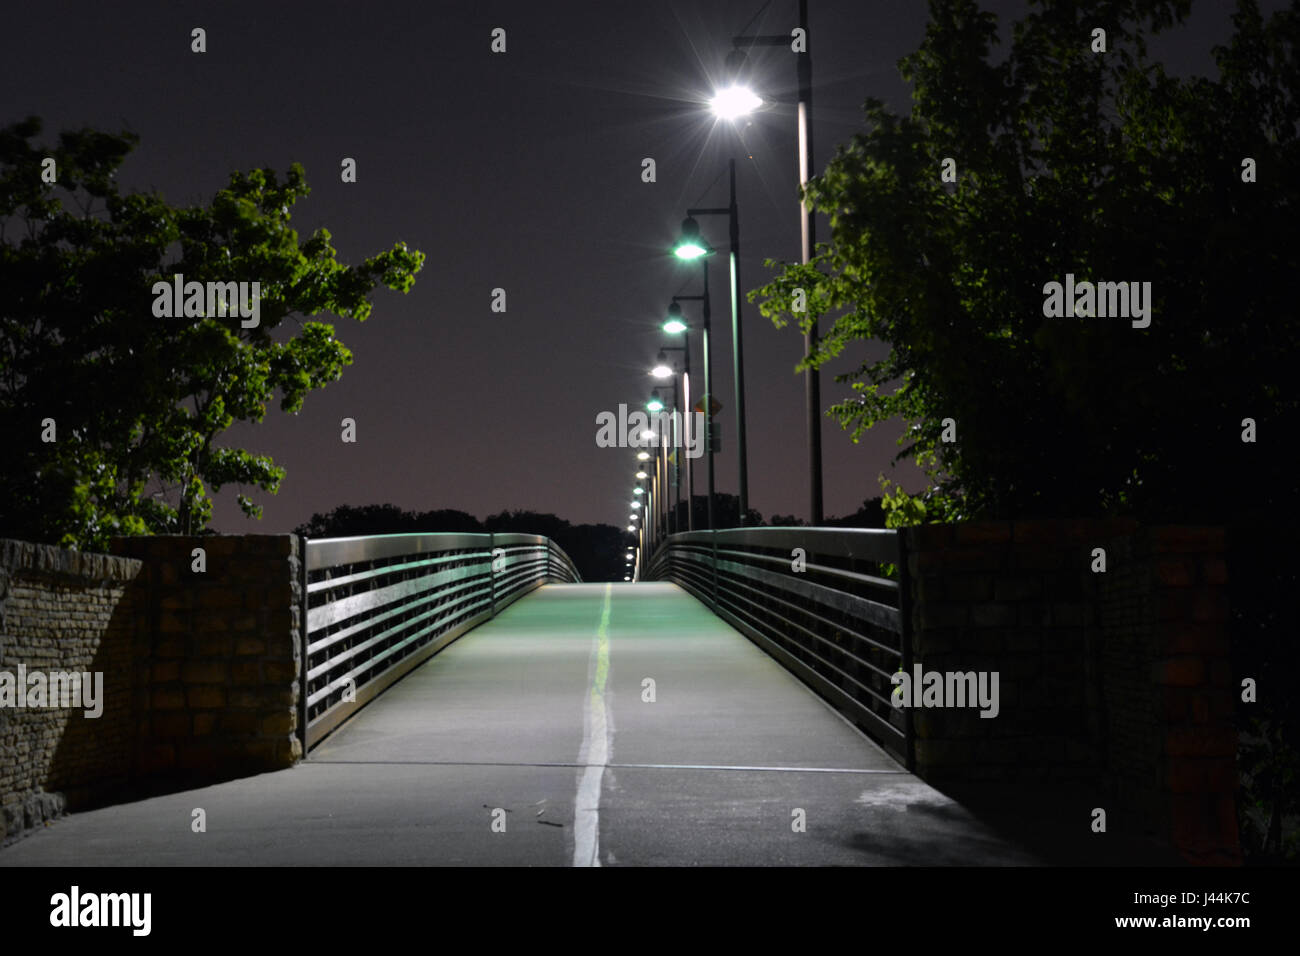 Lights illuminate the Mockingbird footbridge at night at the northern end of White Rock Lake in Dallas, Texas - Stock Image